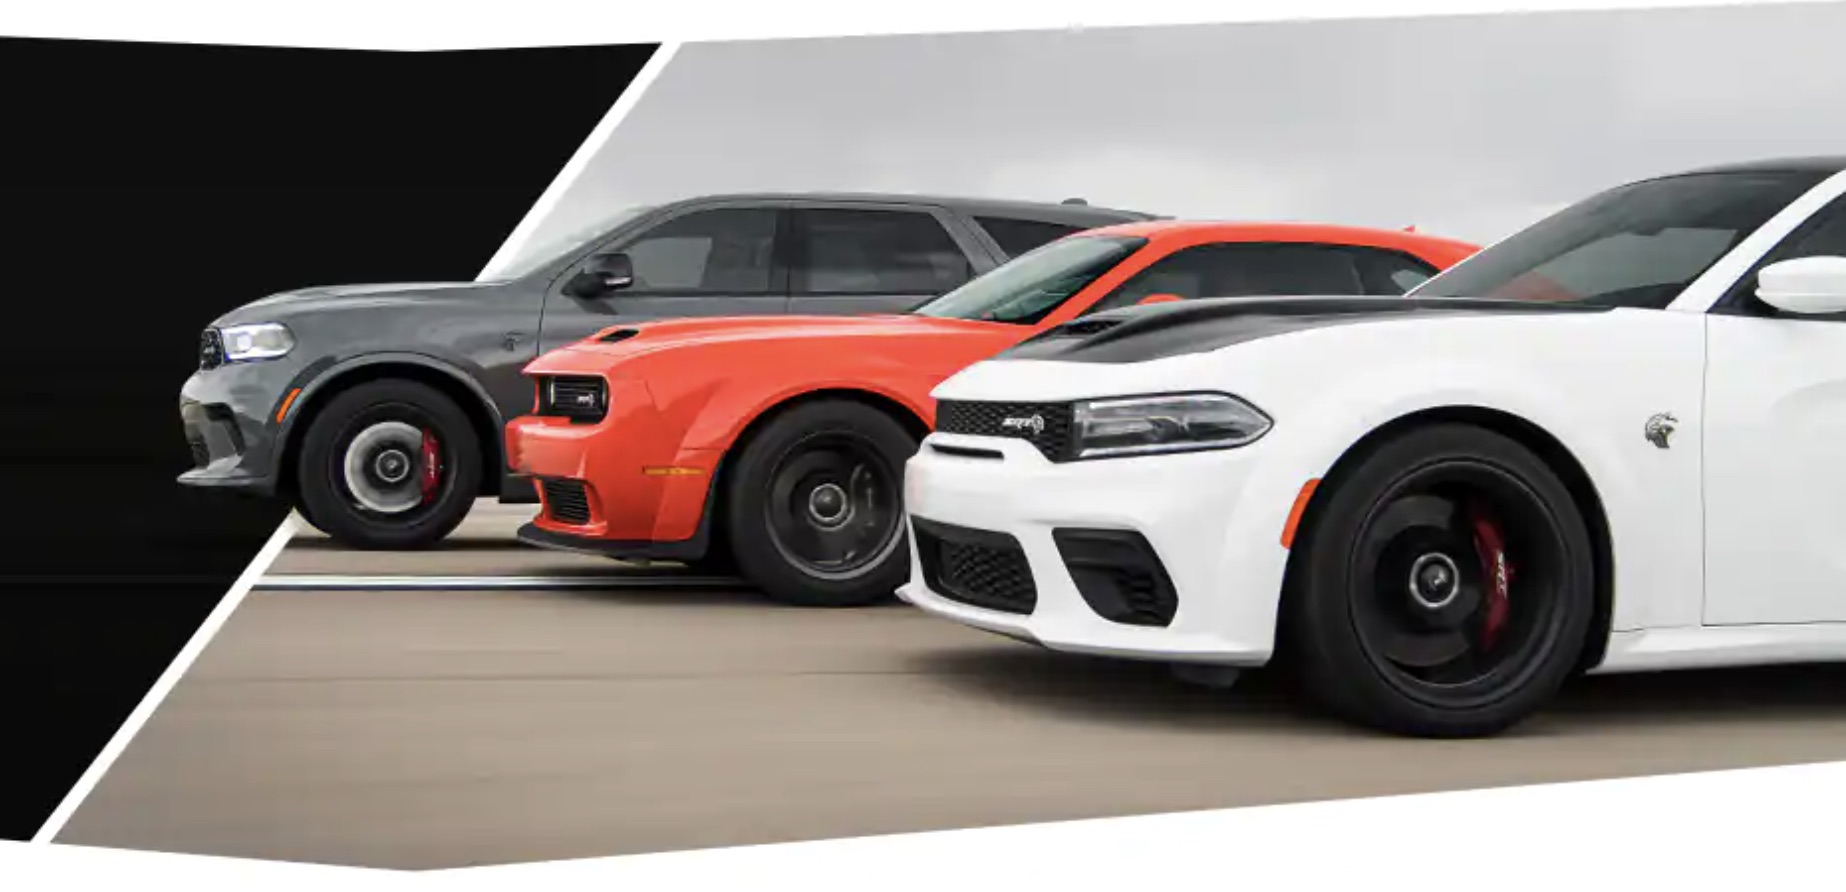 Three 2021 Dodge vehicles lined up in a row